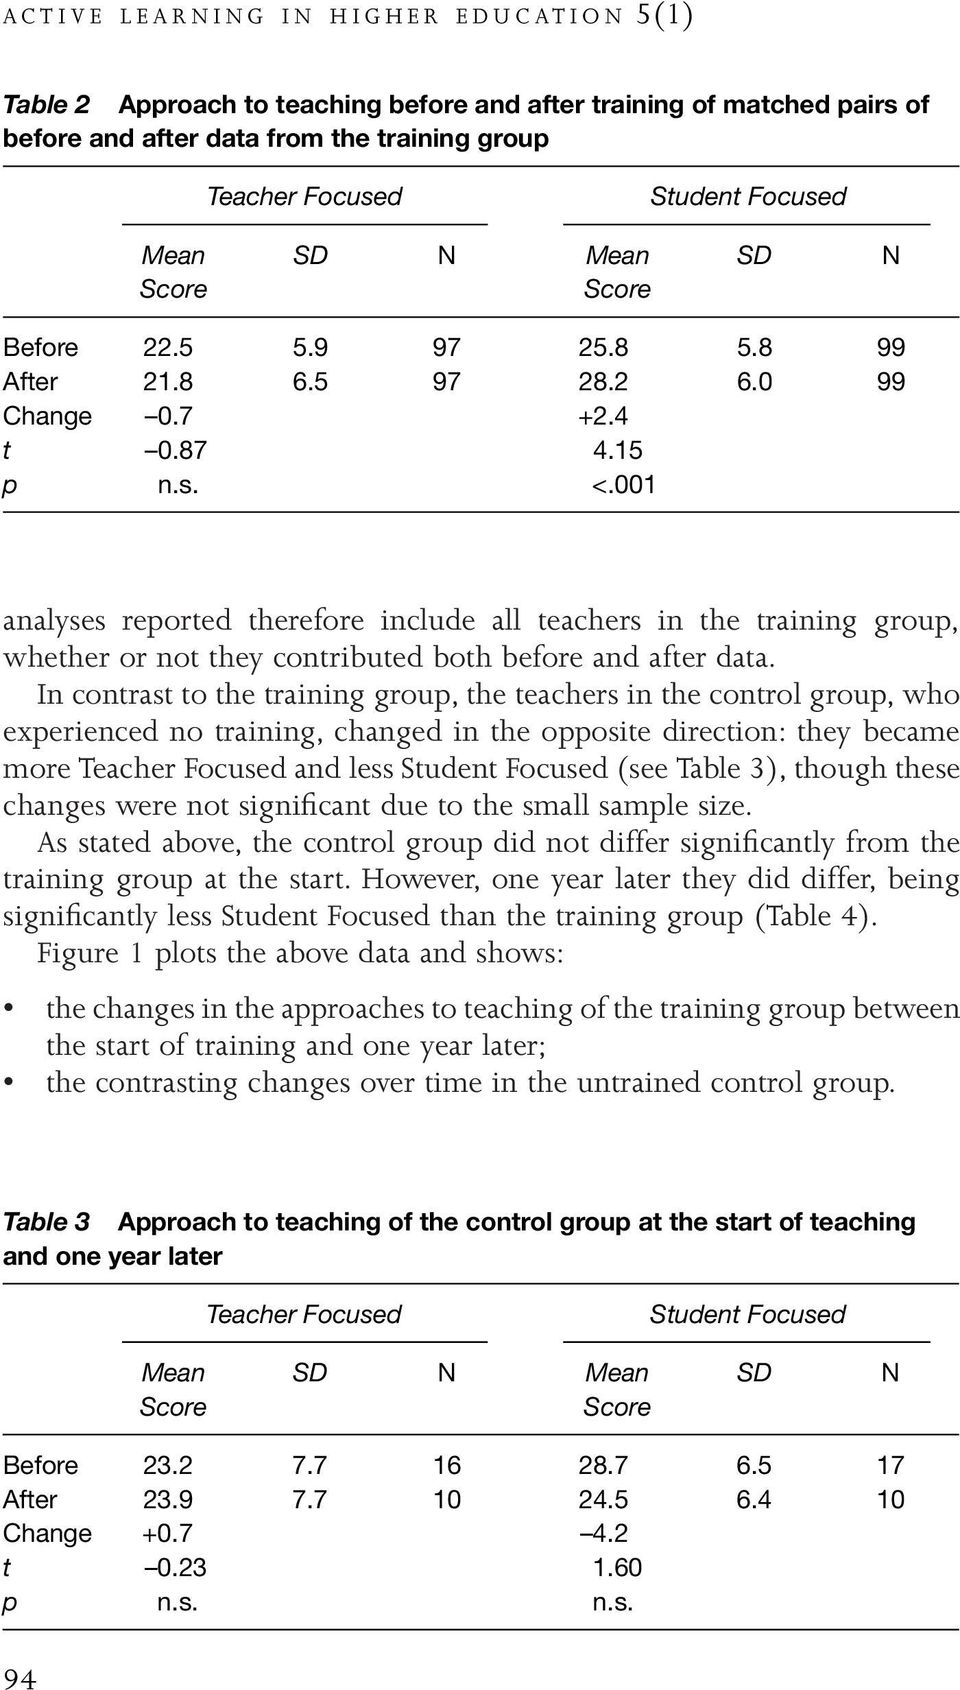 001 analyses reported therefore include all teachers in the training group, whether or not they contributed both before and after data.